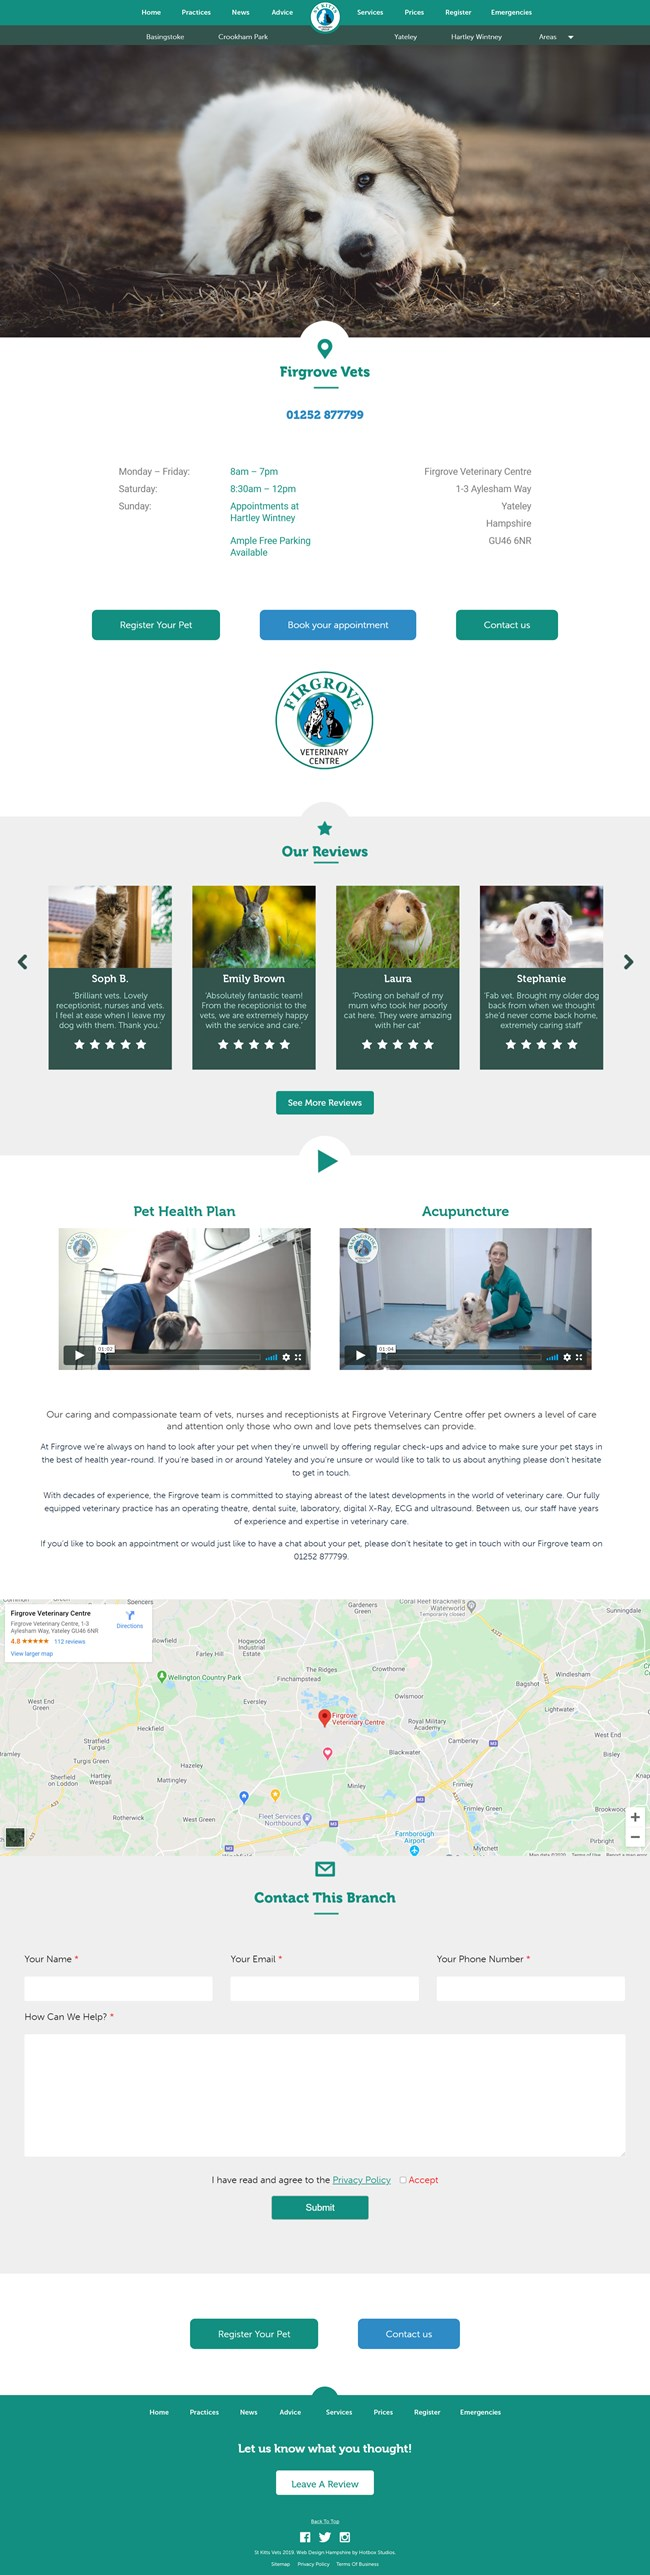 St Kitts Vet Website Design and WordPress Web Development SP006 Practices Yateley Vets In Firgrove